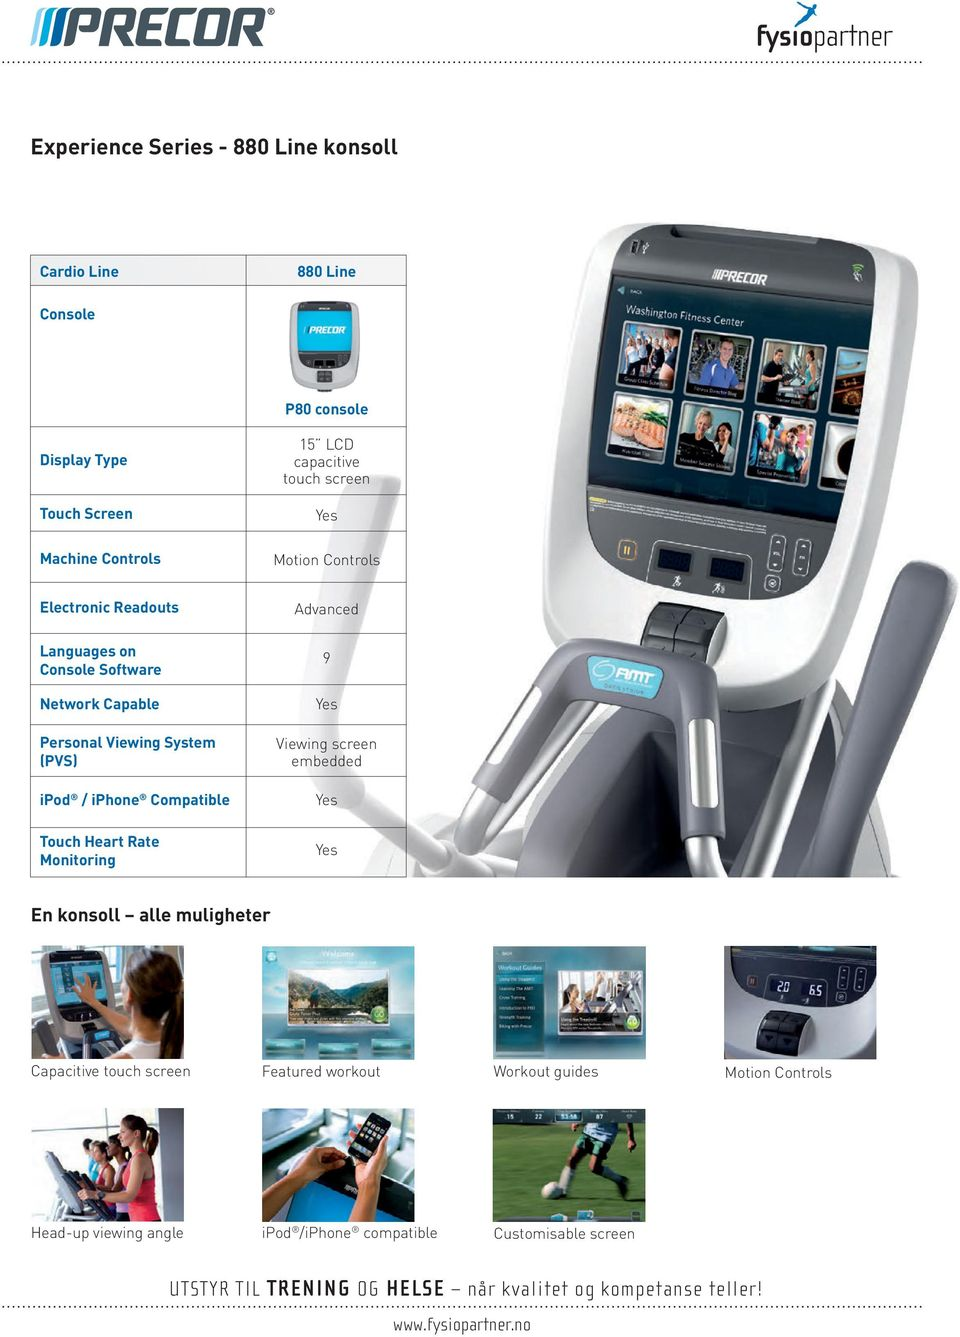 compartmen Experience Series Languages on automaticall 9 880 Experience Console Software Line Series Featured workout Users are encouraged Workout to try gui m 880 Network Line Capable Yes variety in